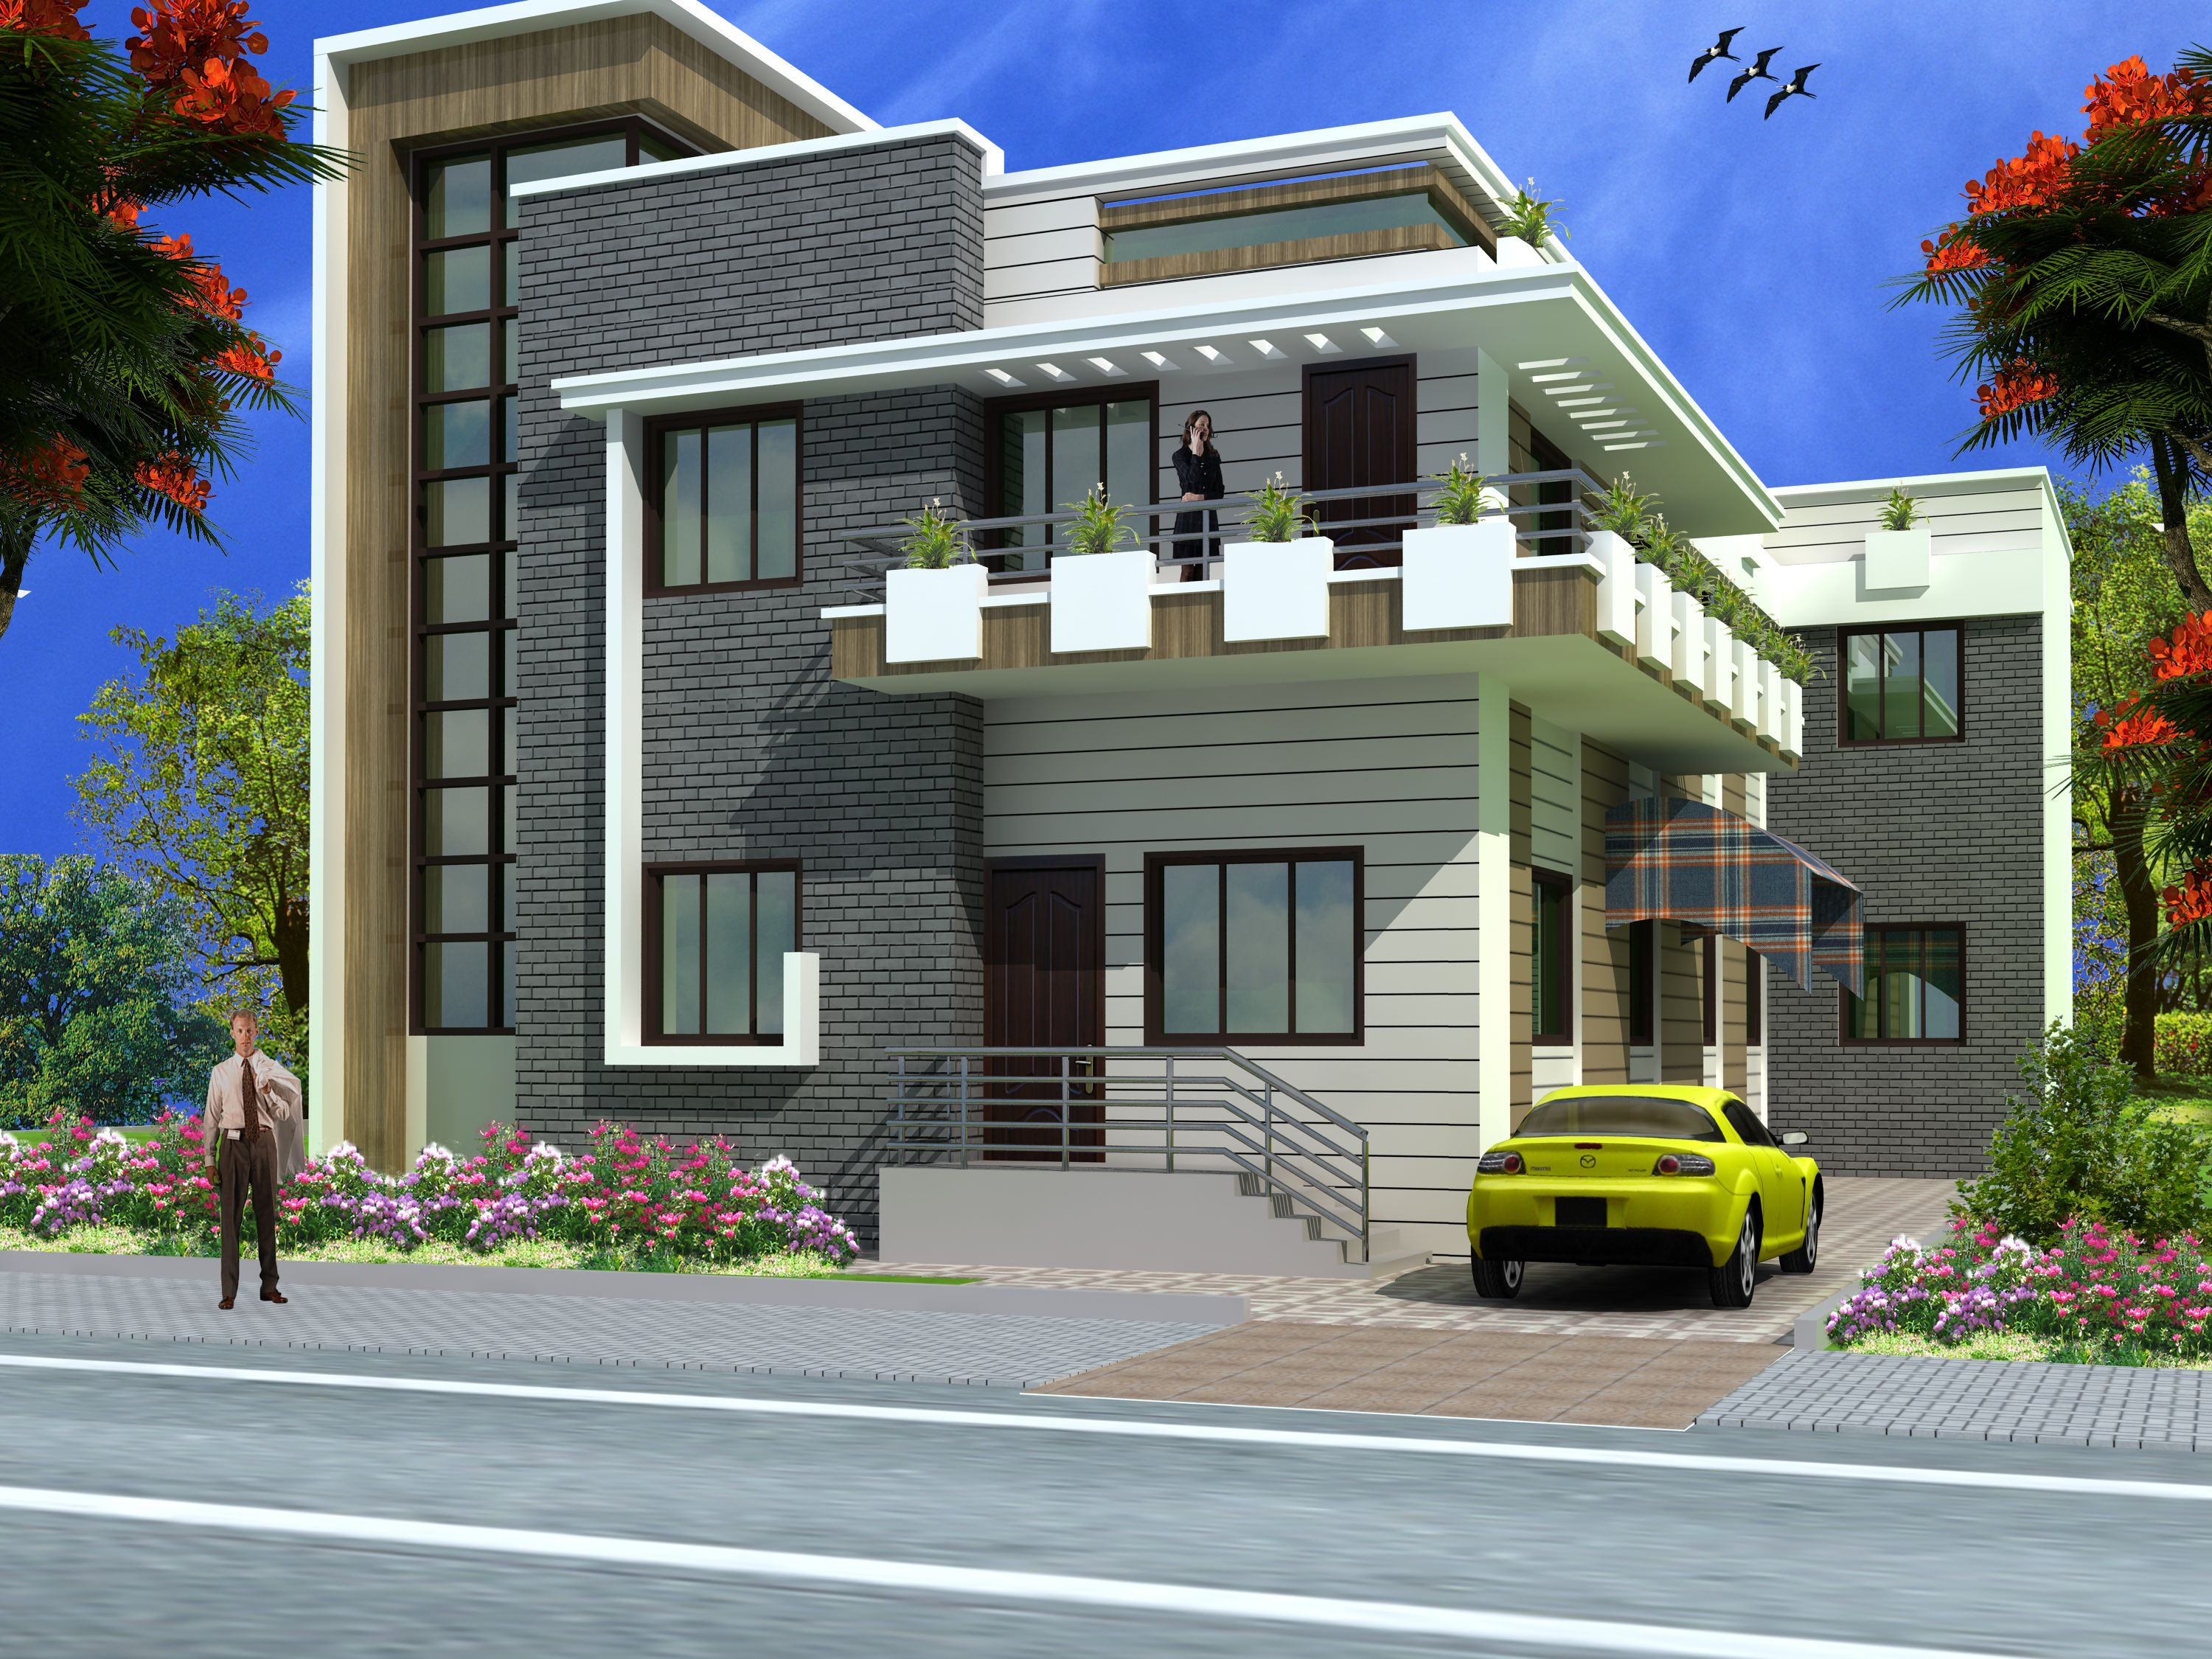 Modern duplex 2 floor house design click on this link for Model house photos in indian